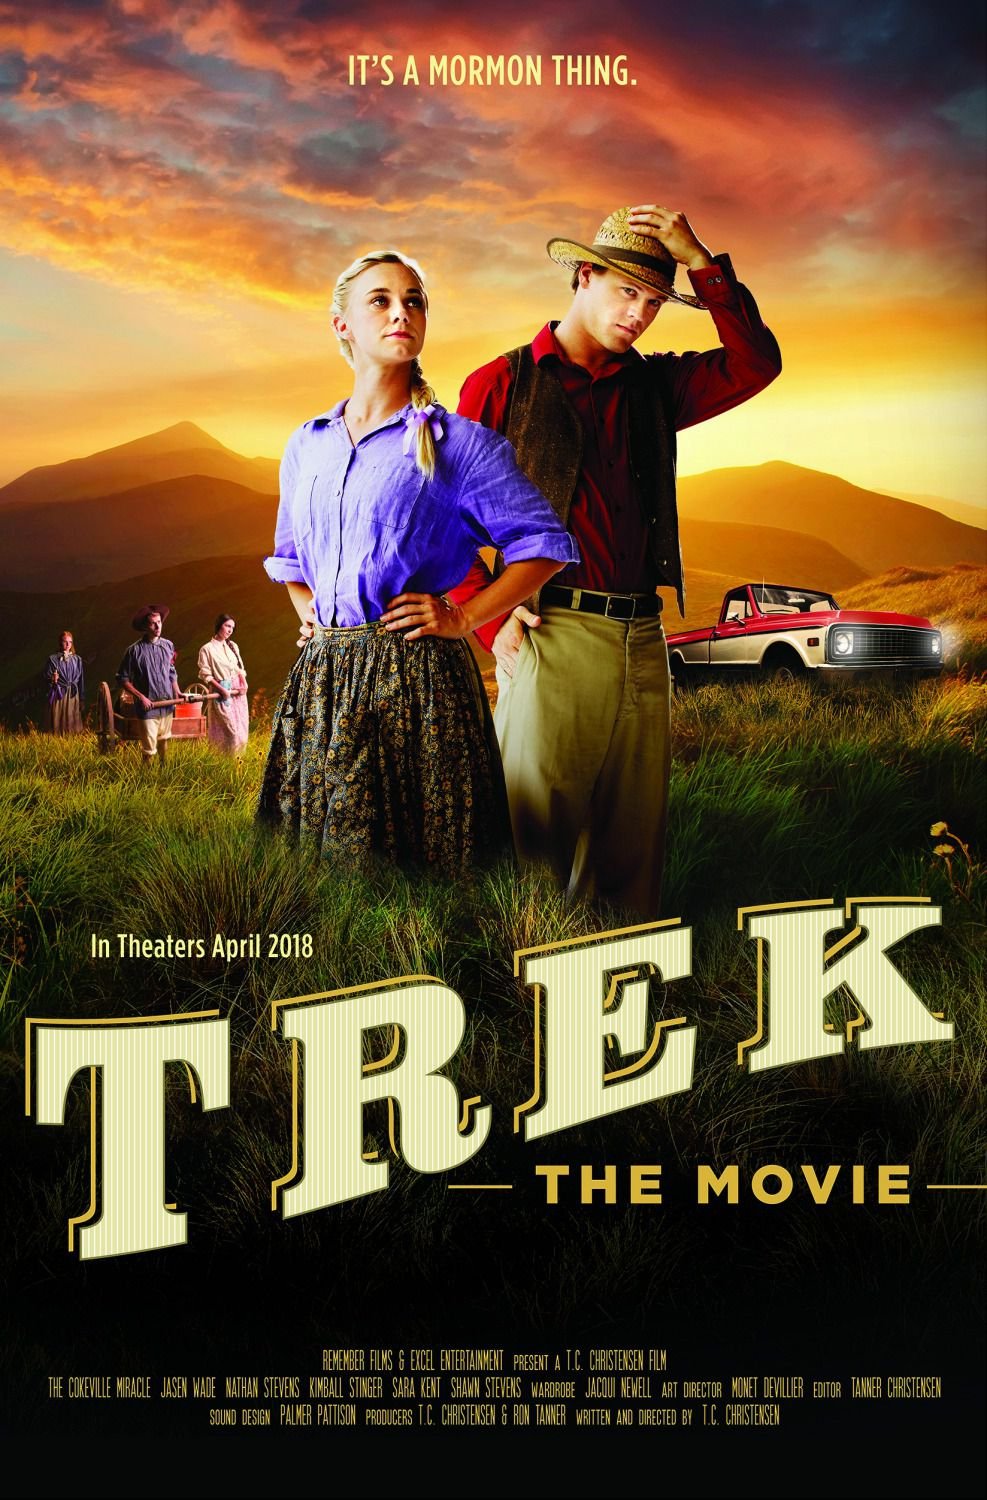 Trek the movie - It's a Mormon thing - Cast: Austin Grant, Stefania Barr, Joel Bishop - film poster 2018